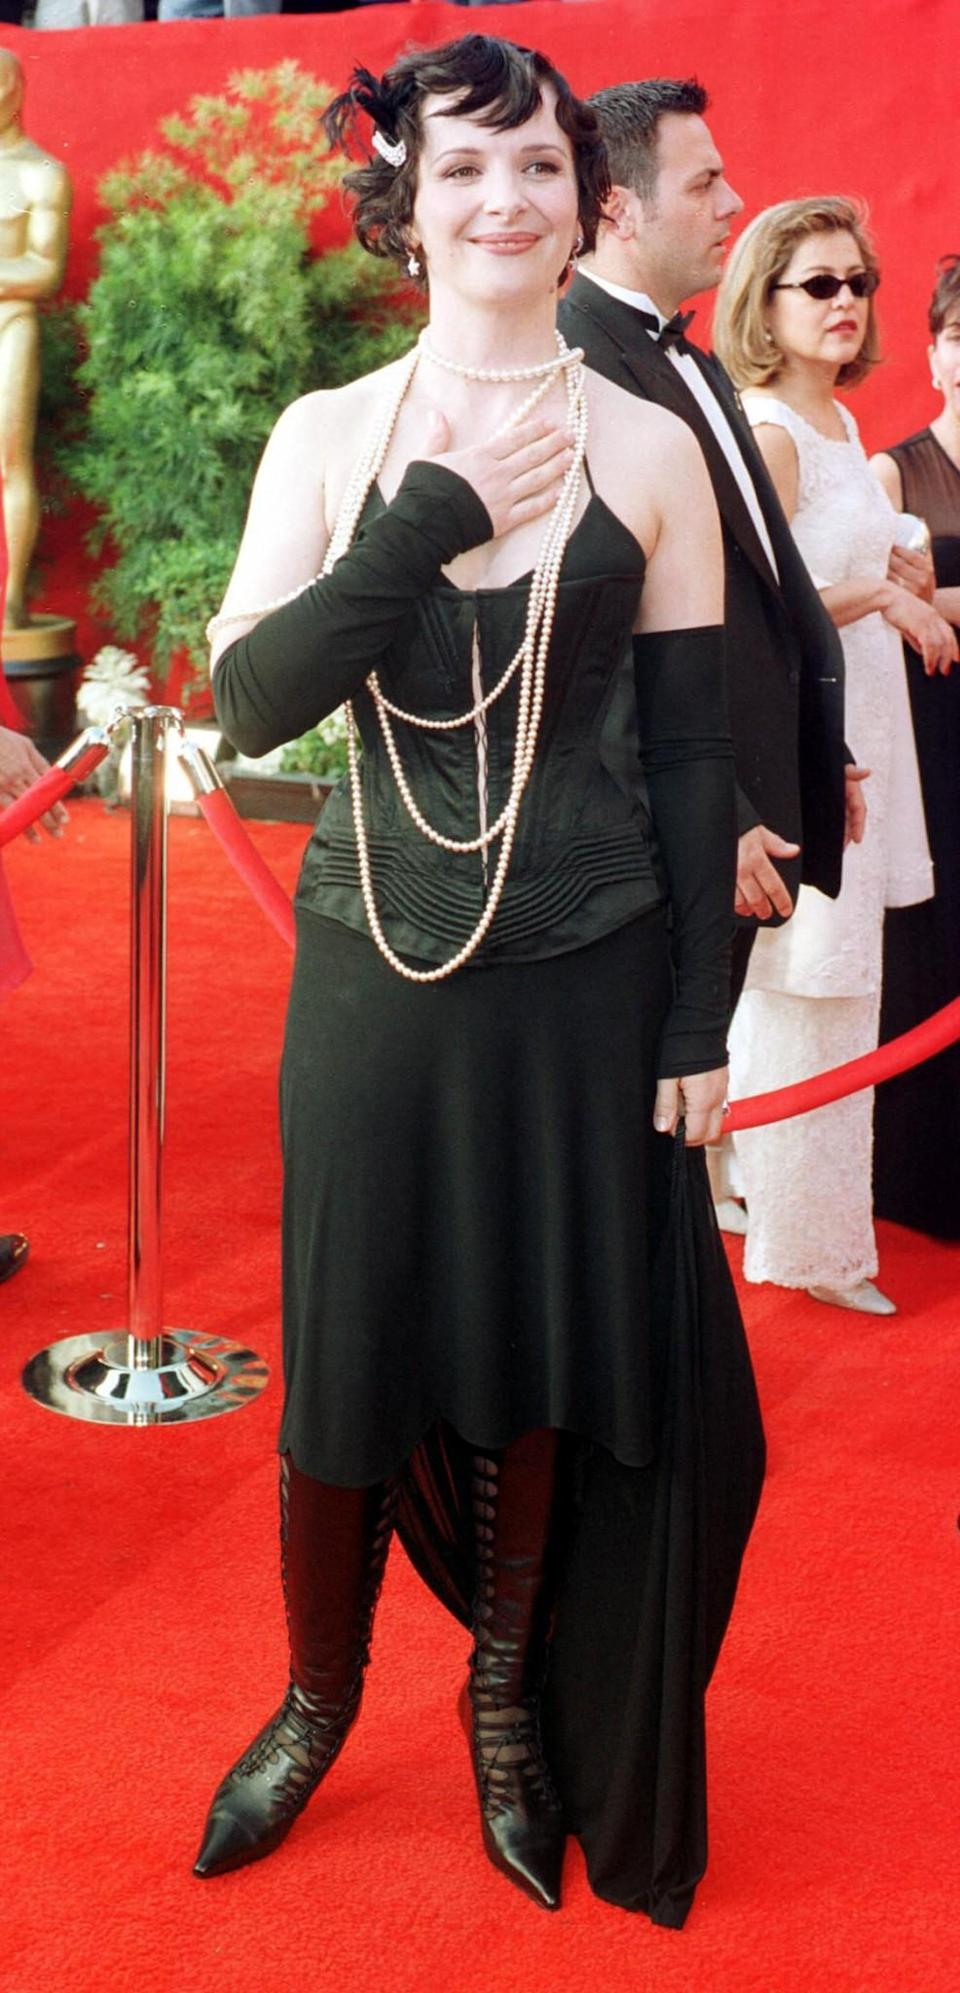 <p>Binoche's 2001 Oscars outfit appears to have taken inspiration from raiding our mothers' wardrobes as little girls. <em>[Photo: PA]</em> </p>